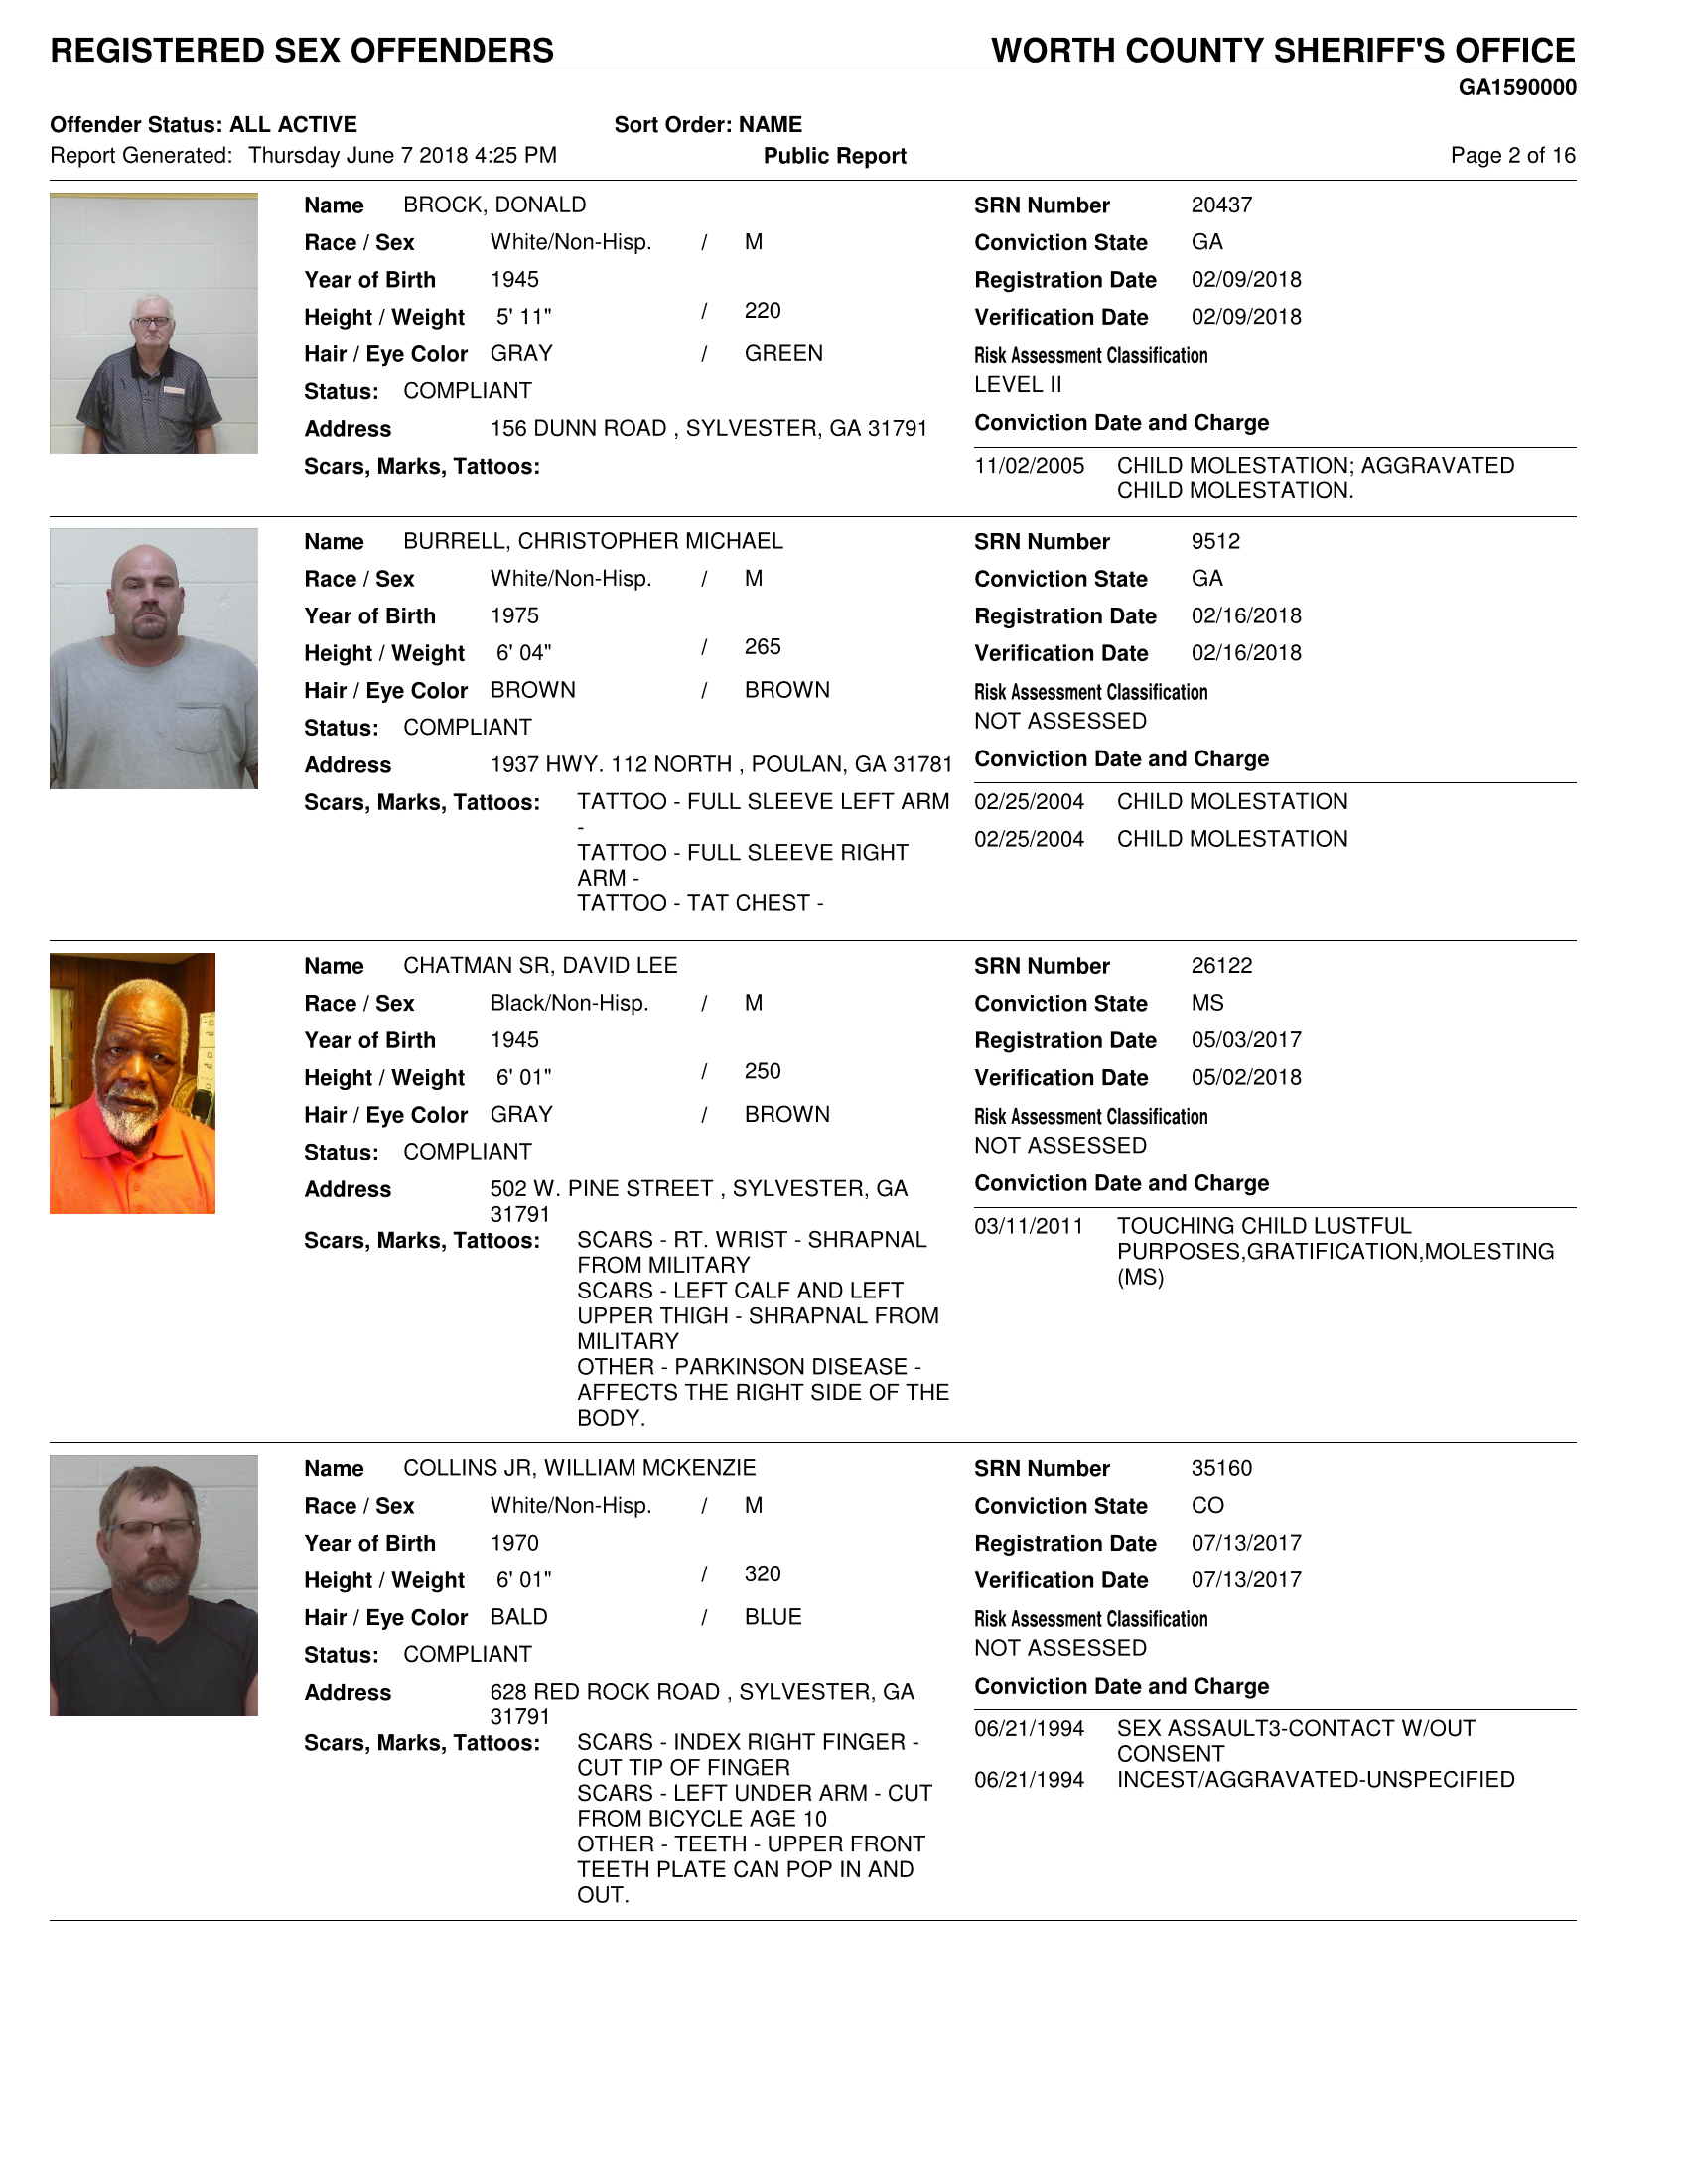 St joseph county sex crimes list